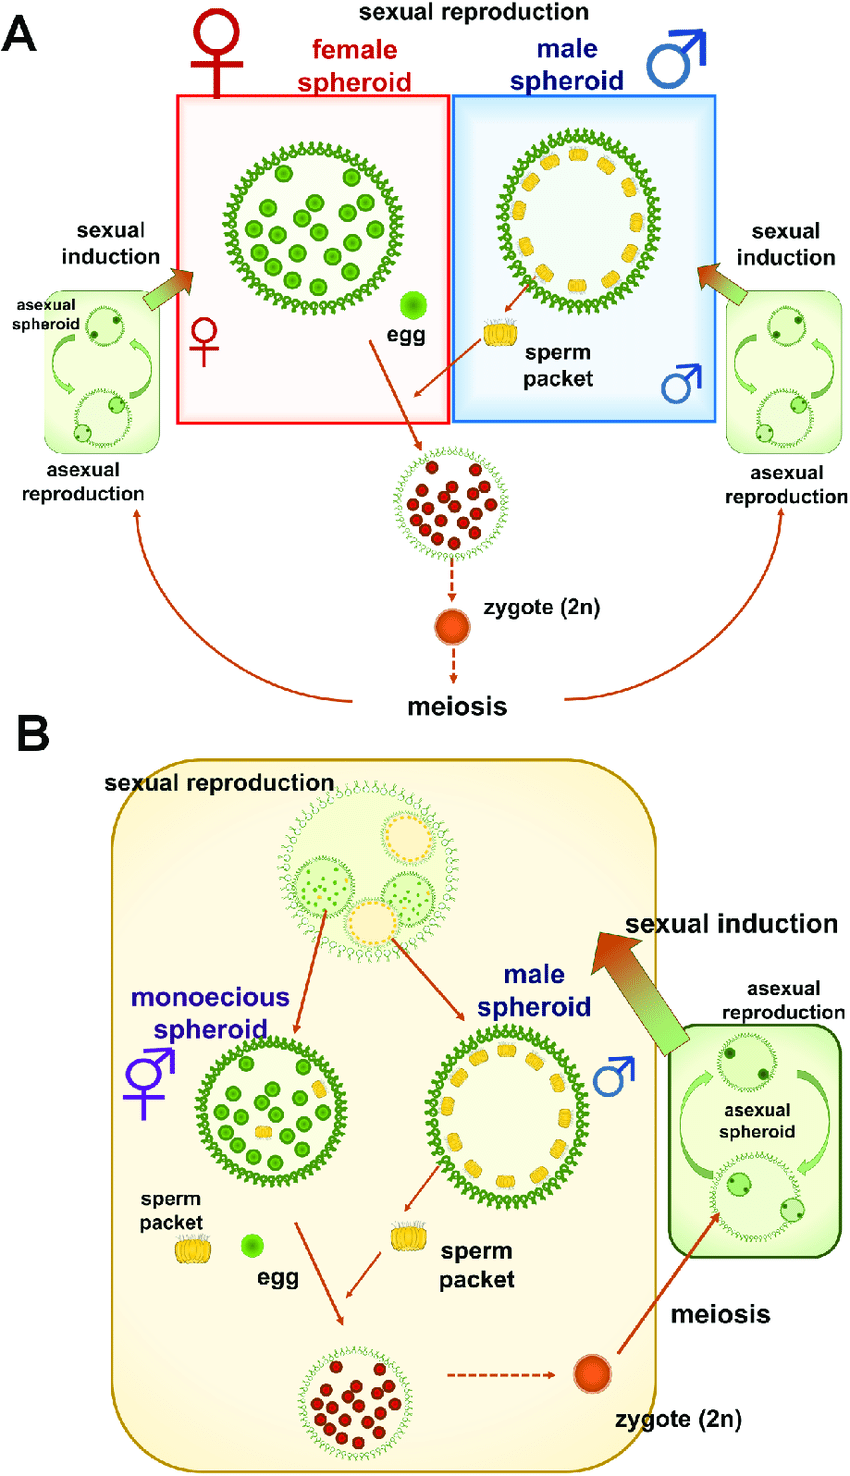 medium resolution of life cycle diagrams for two related species of volvox based on nozaki et al